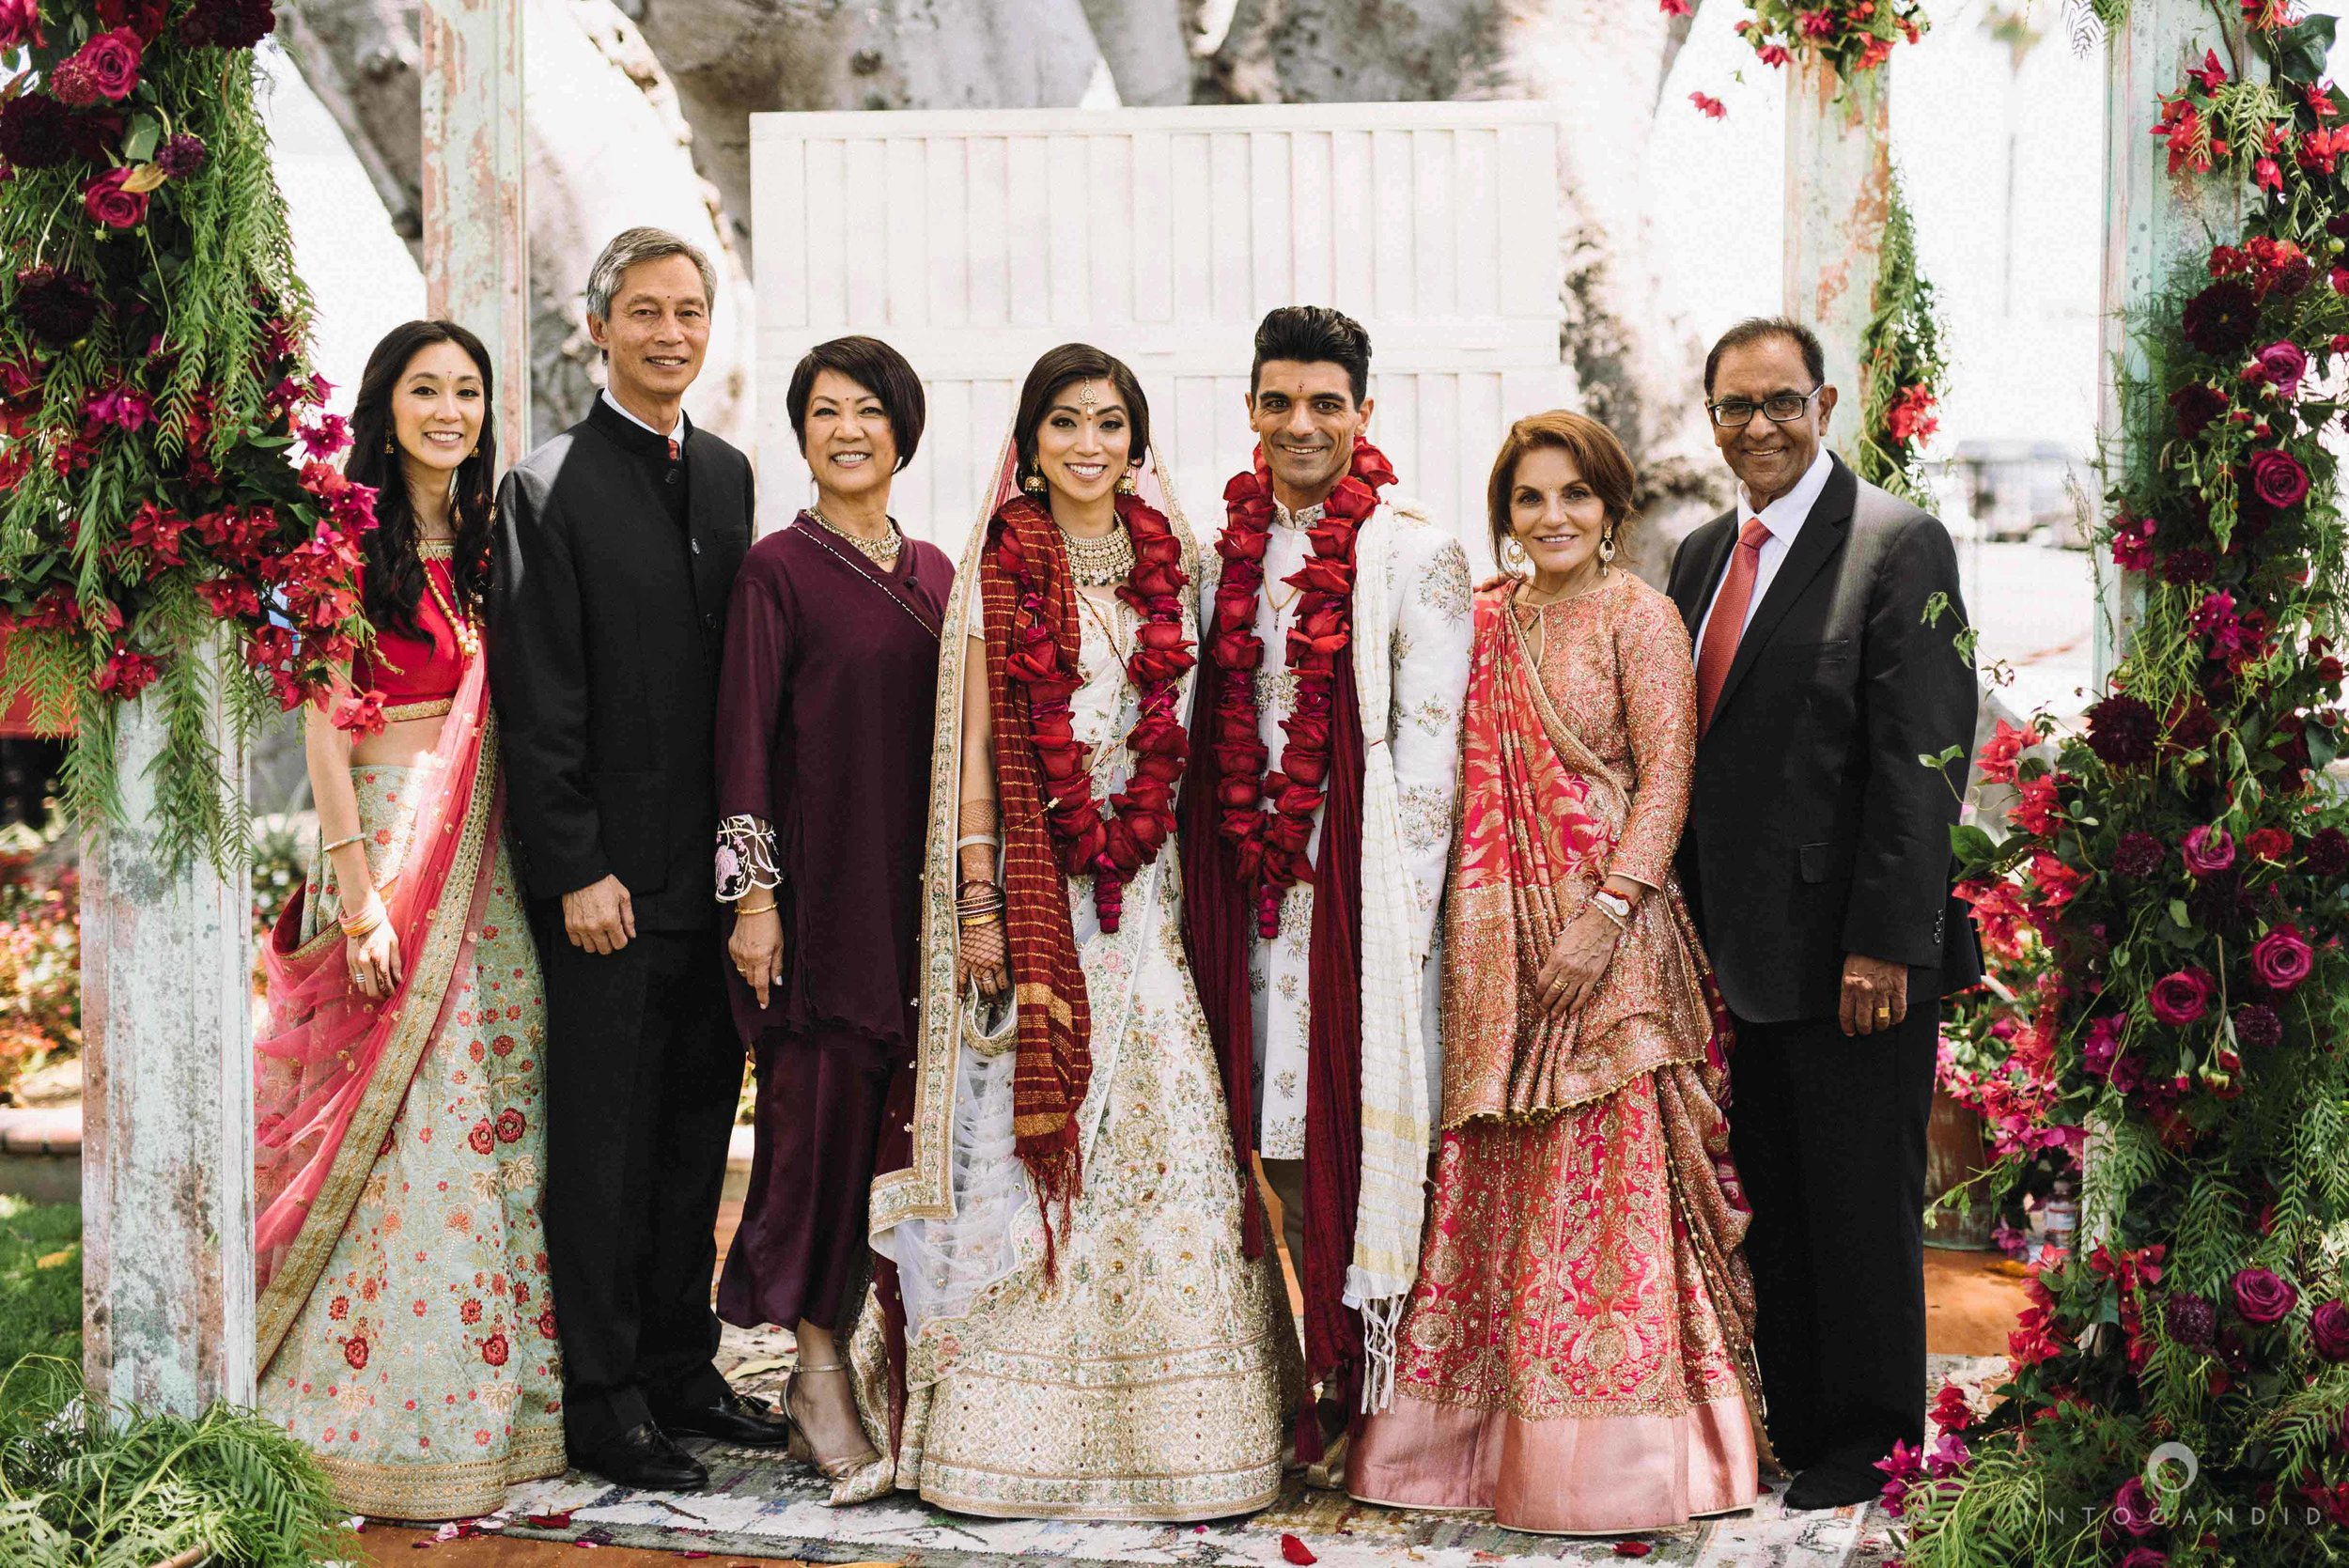 LosAngeles_Indian_Wedding_Photographer_AS_118.jpg